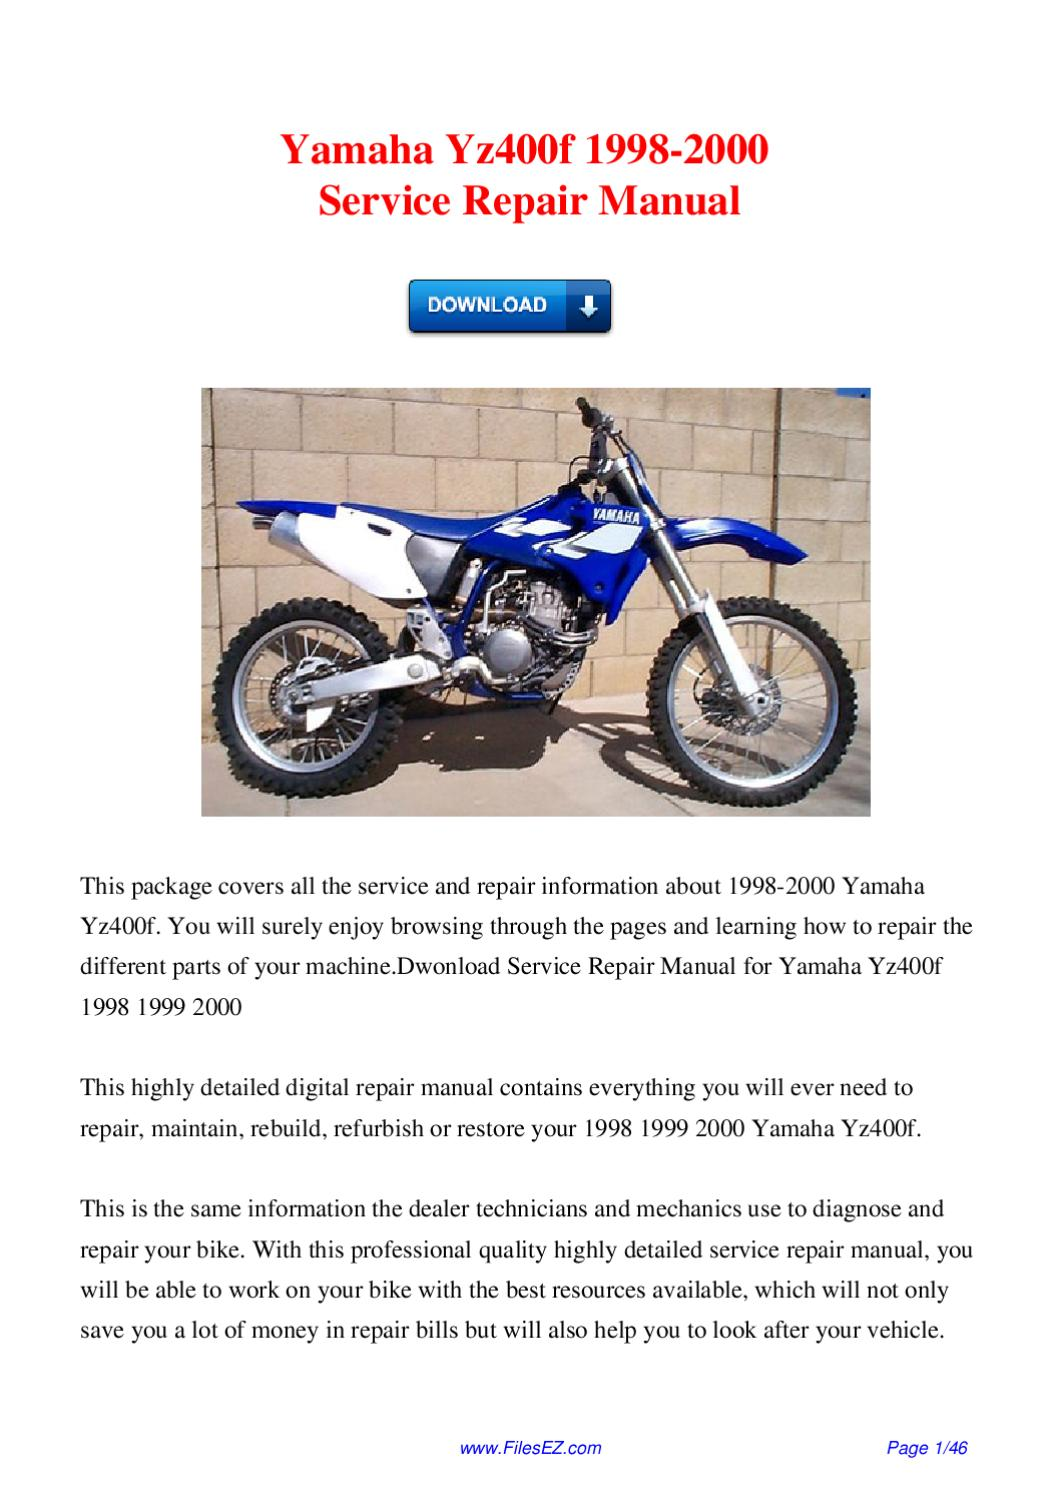 yamaha yz400f 1998 2000 service repair manual by david. Black Bedroom Furniture Sets. Home Design Ideas